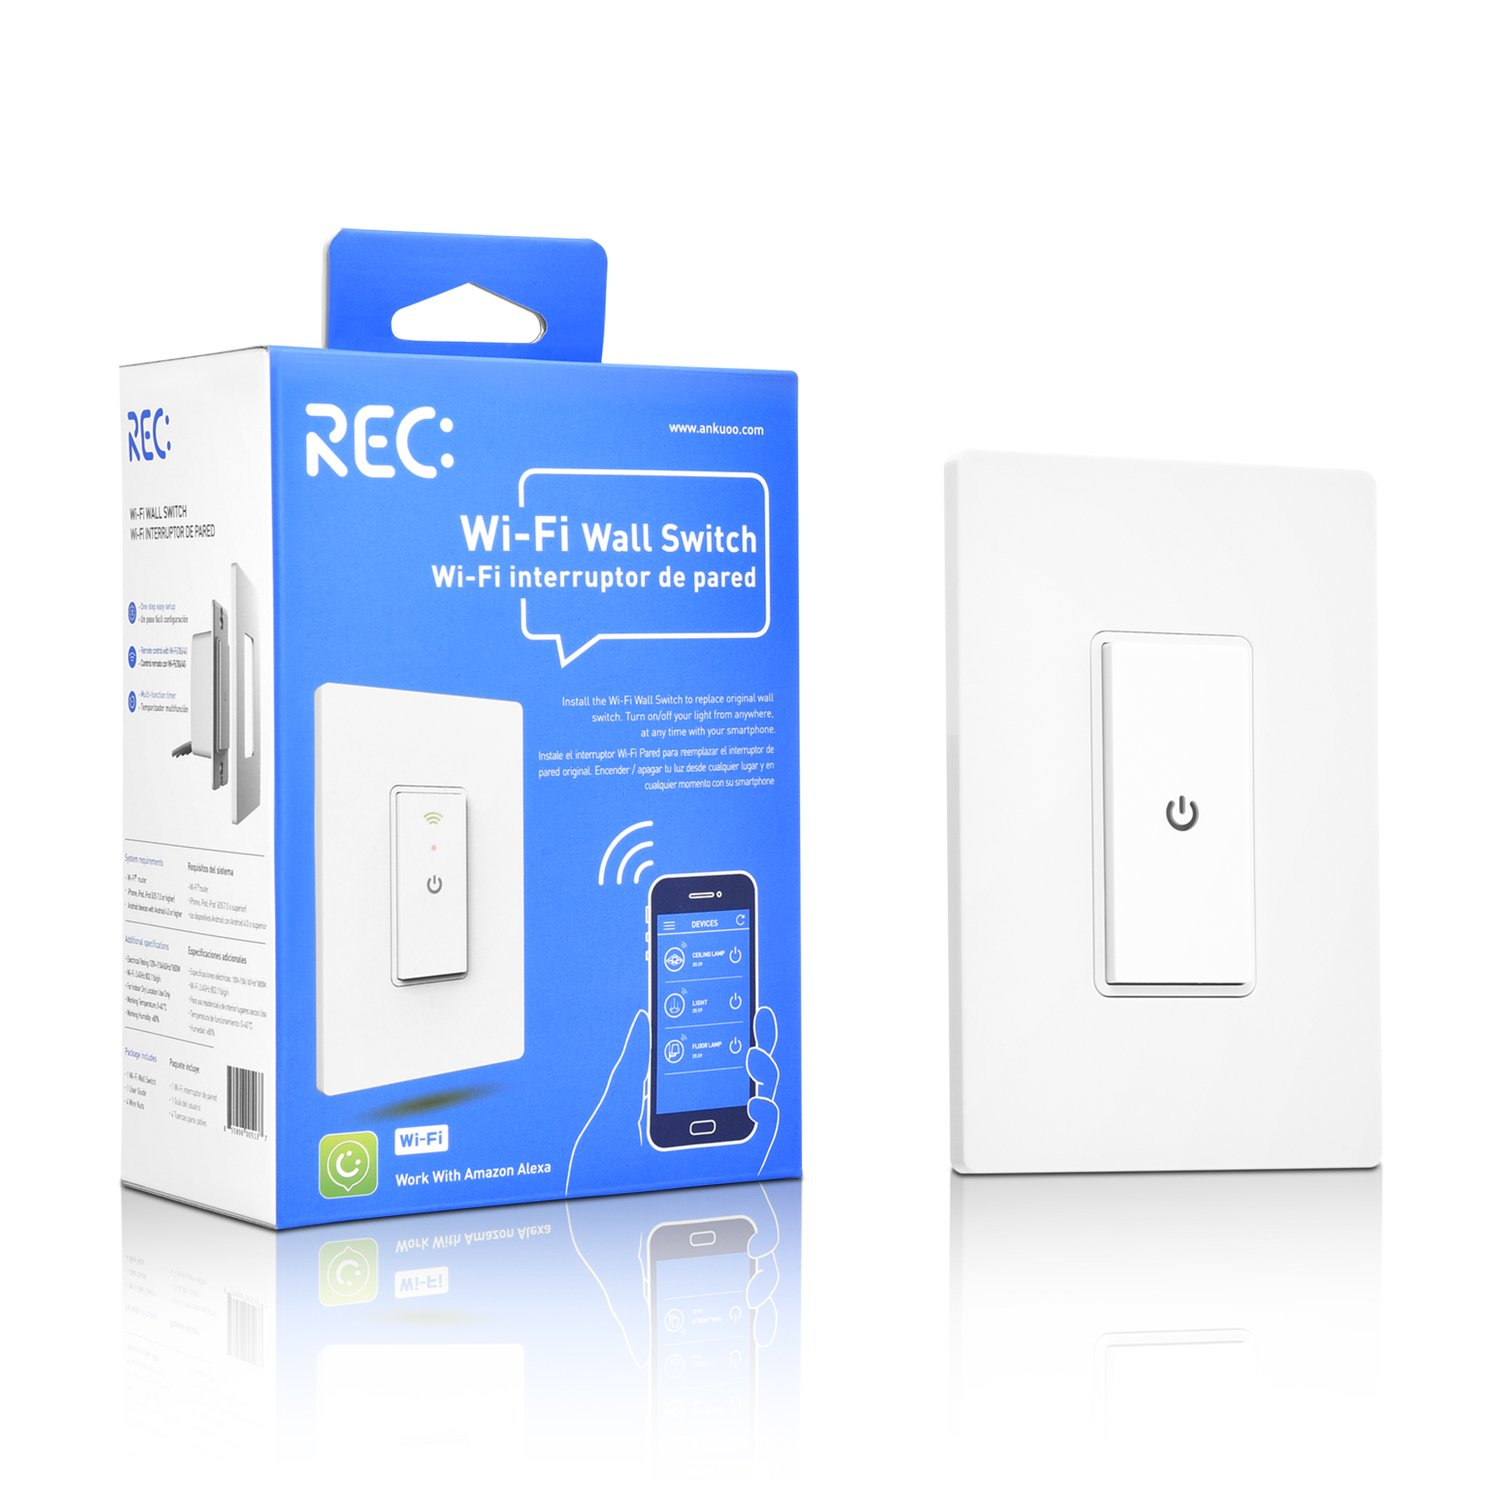 WiFi Smart Light Switch Compatible with Alexa Echo, Smartphone Remote Control Wireless Switch from Ankuoo, No Hub Required, Timer, Automatic APP Control, for Home/Office/Living Room